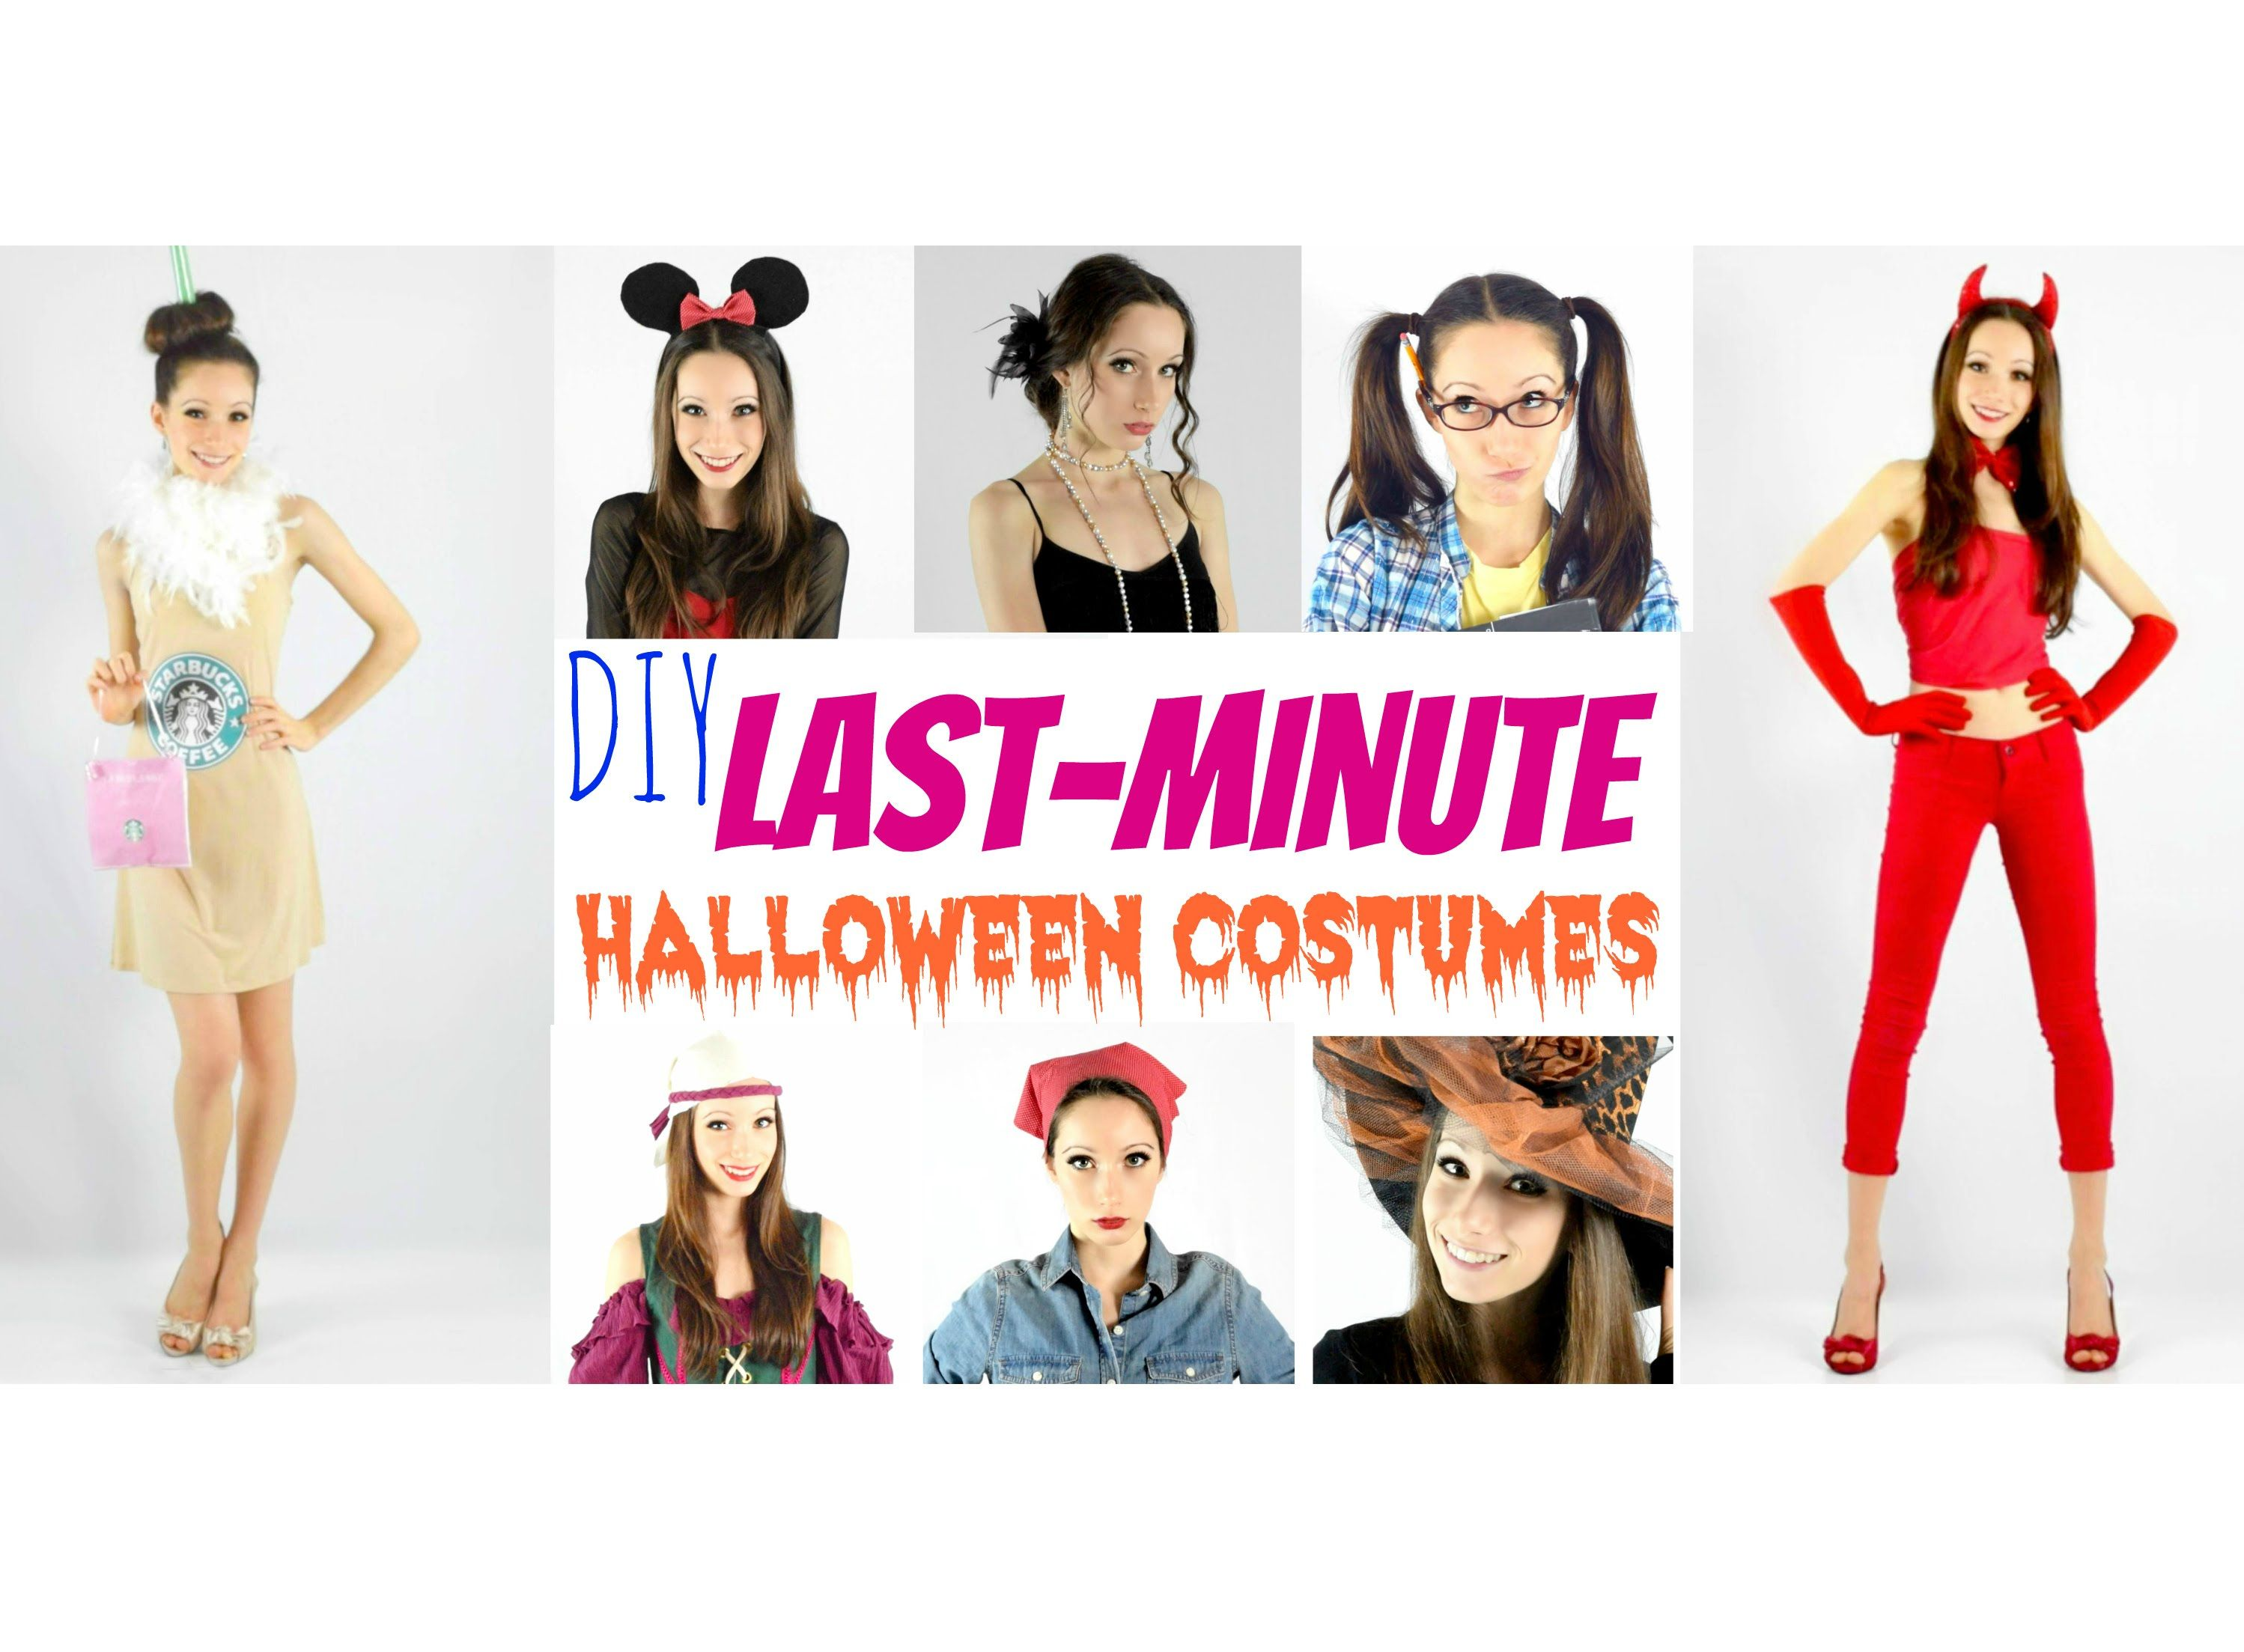 Perfect for all you procrastinators out there. if you\u0027ve left your  Halloween costume to the last minute, here are 13 last,minute Costume ideas!